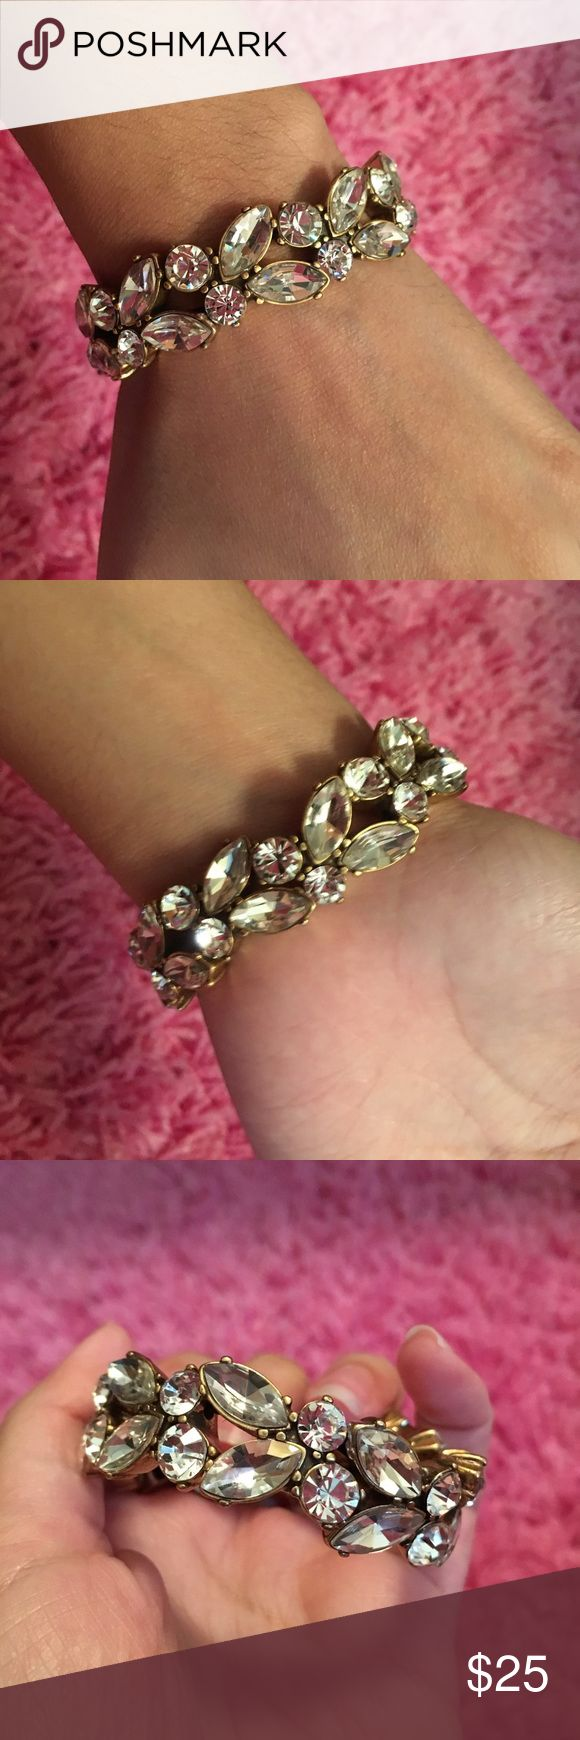 J.Crew Gold Rhinestone Earrings and Bracelet Comes with earrings and the bracelet together. Don't want to sell separately. Price is firm. No trades. J. Crew Jewelry